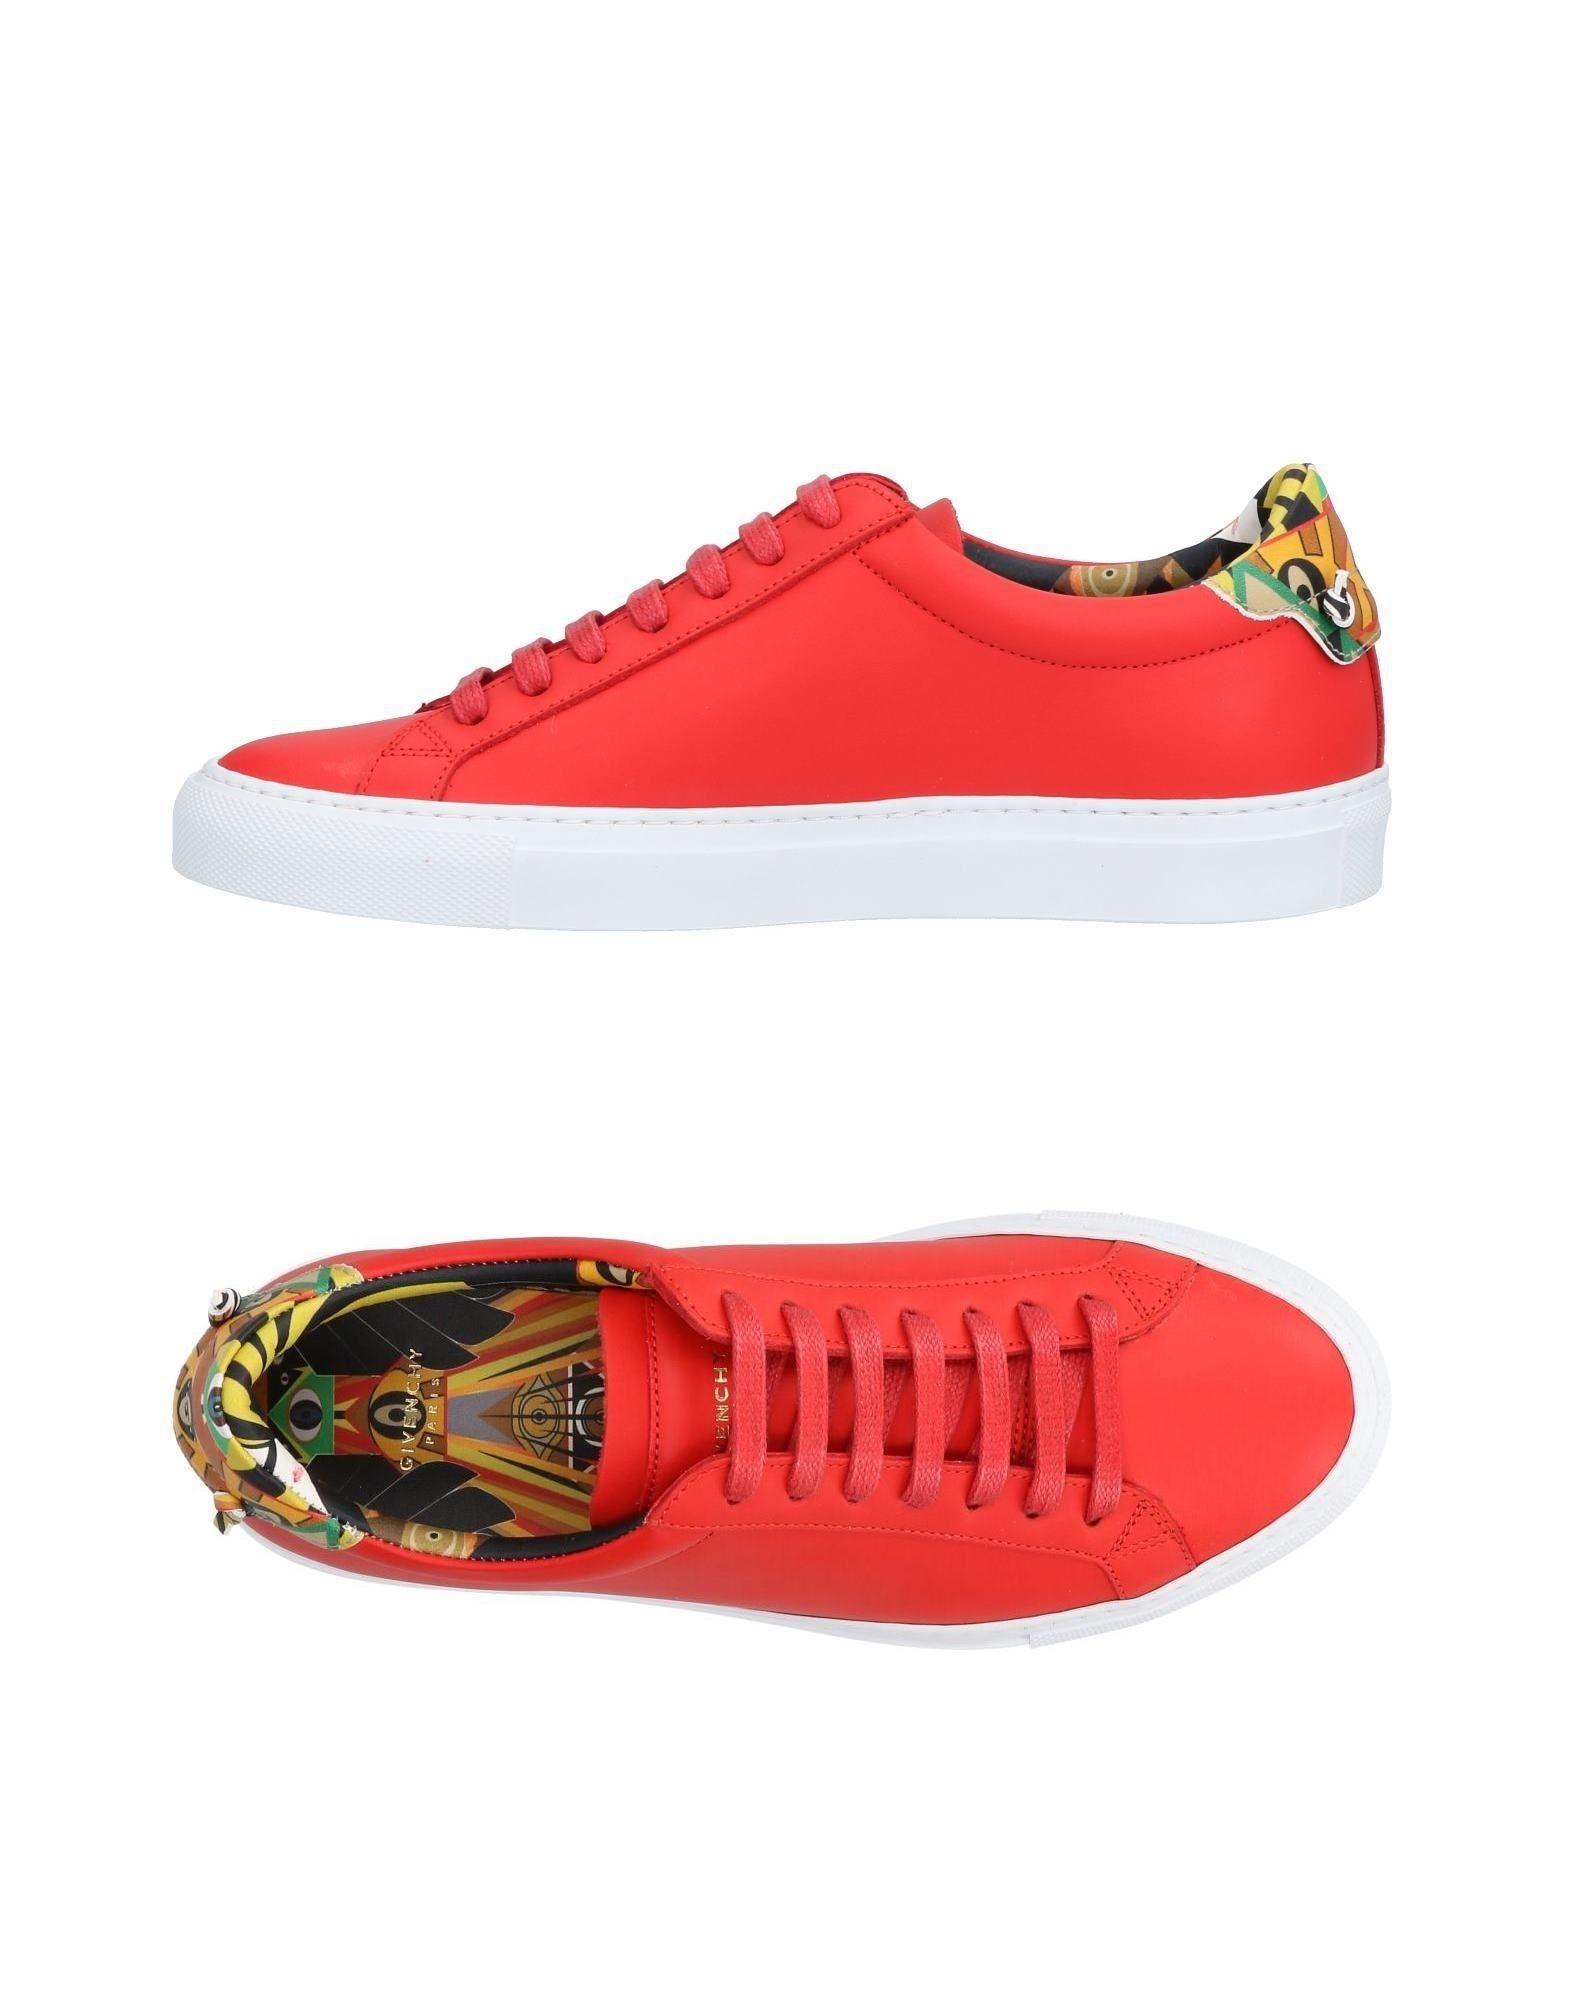 Givenchy Urban Know Low Top Leather Sneaker In Red